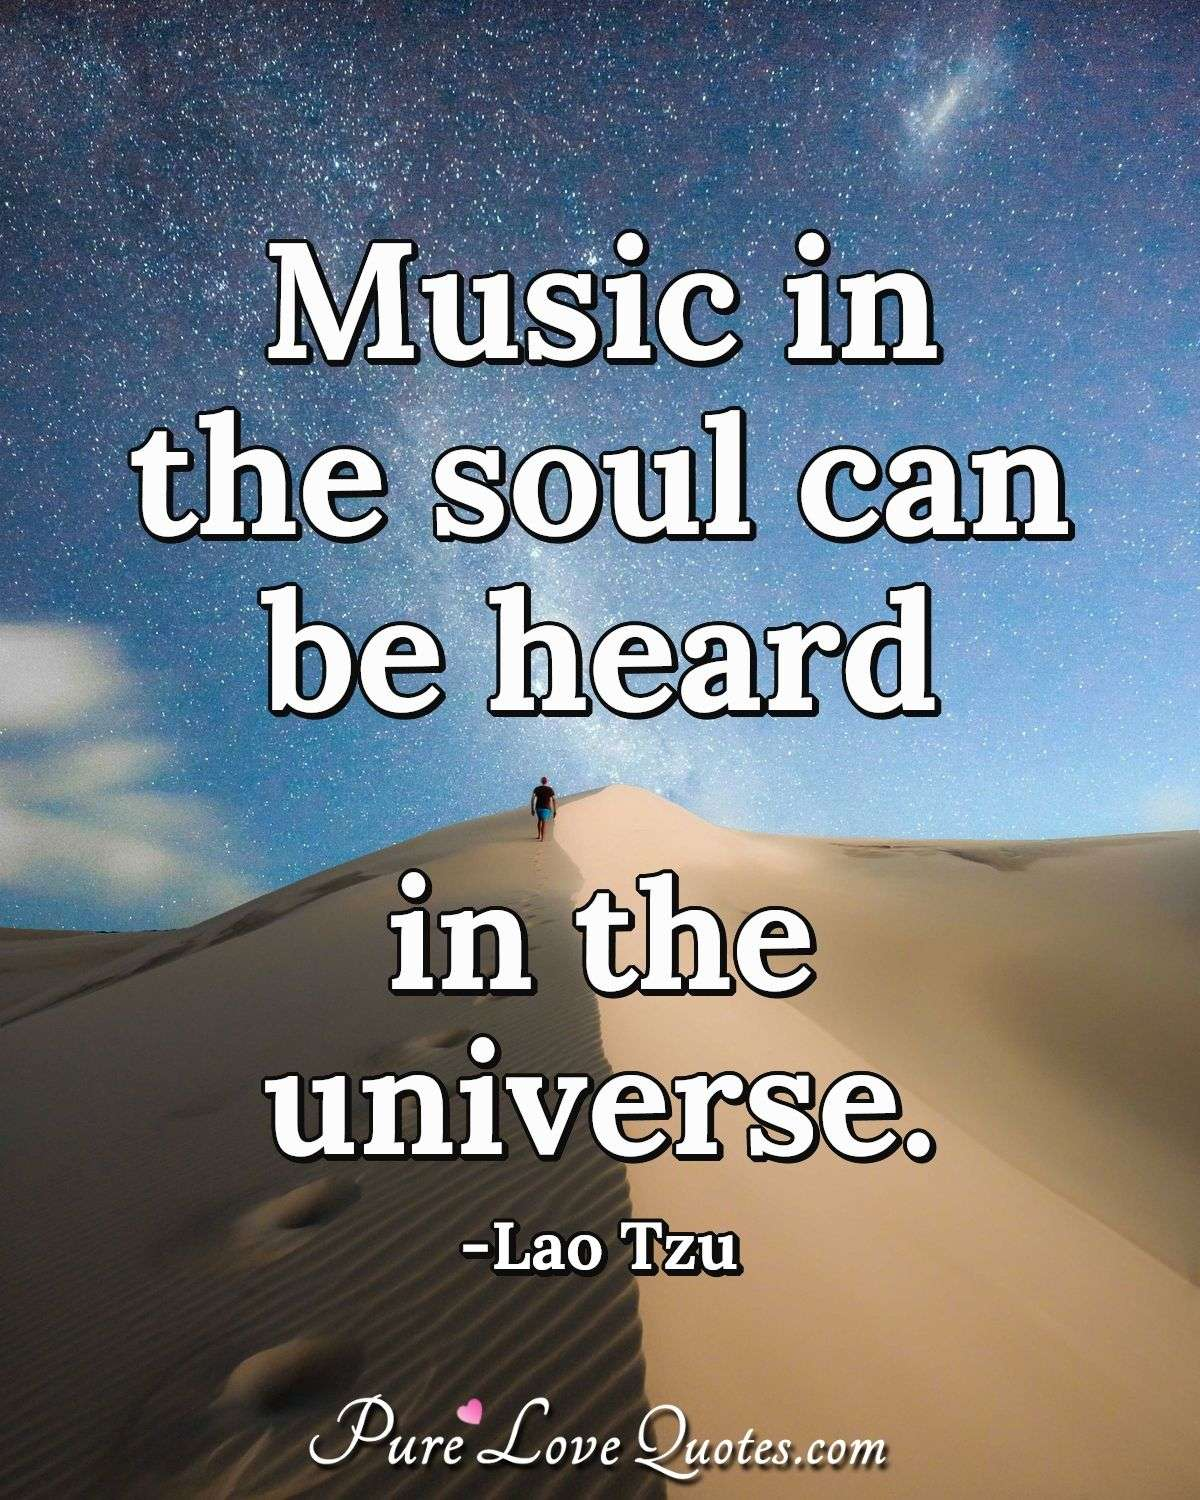 Music in the soul can be heard in the universe. - Lao Tzu